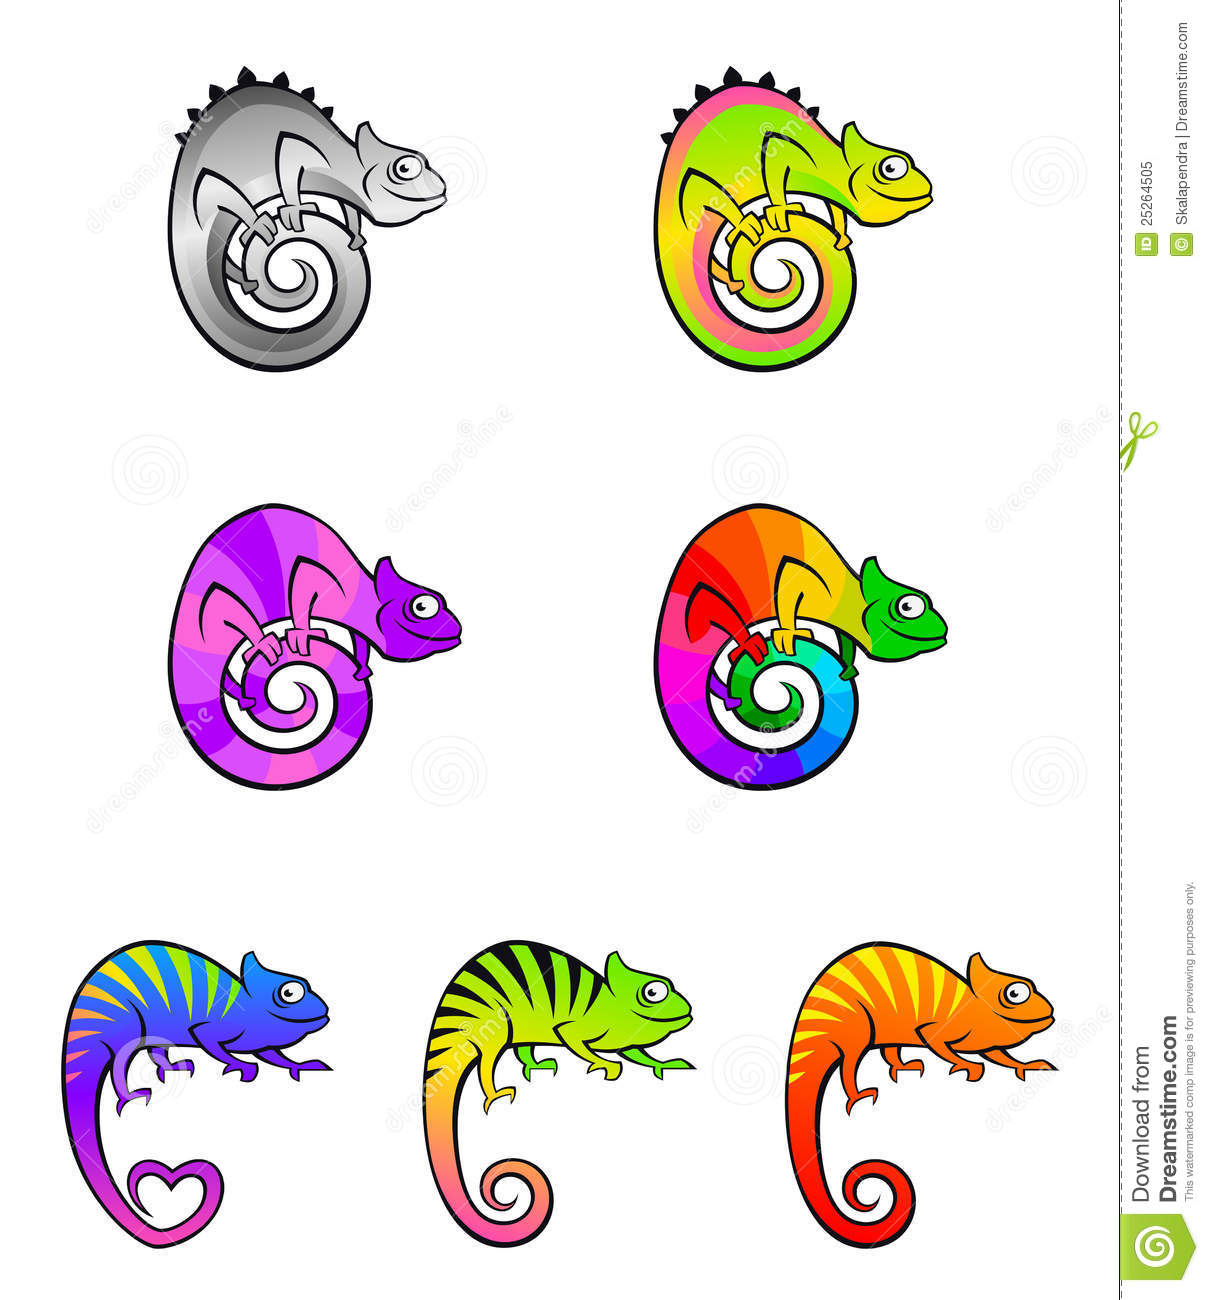 1209x1300 Colouful Clipart French Horn Free Collection Download And Share